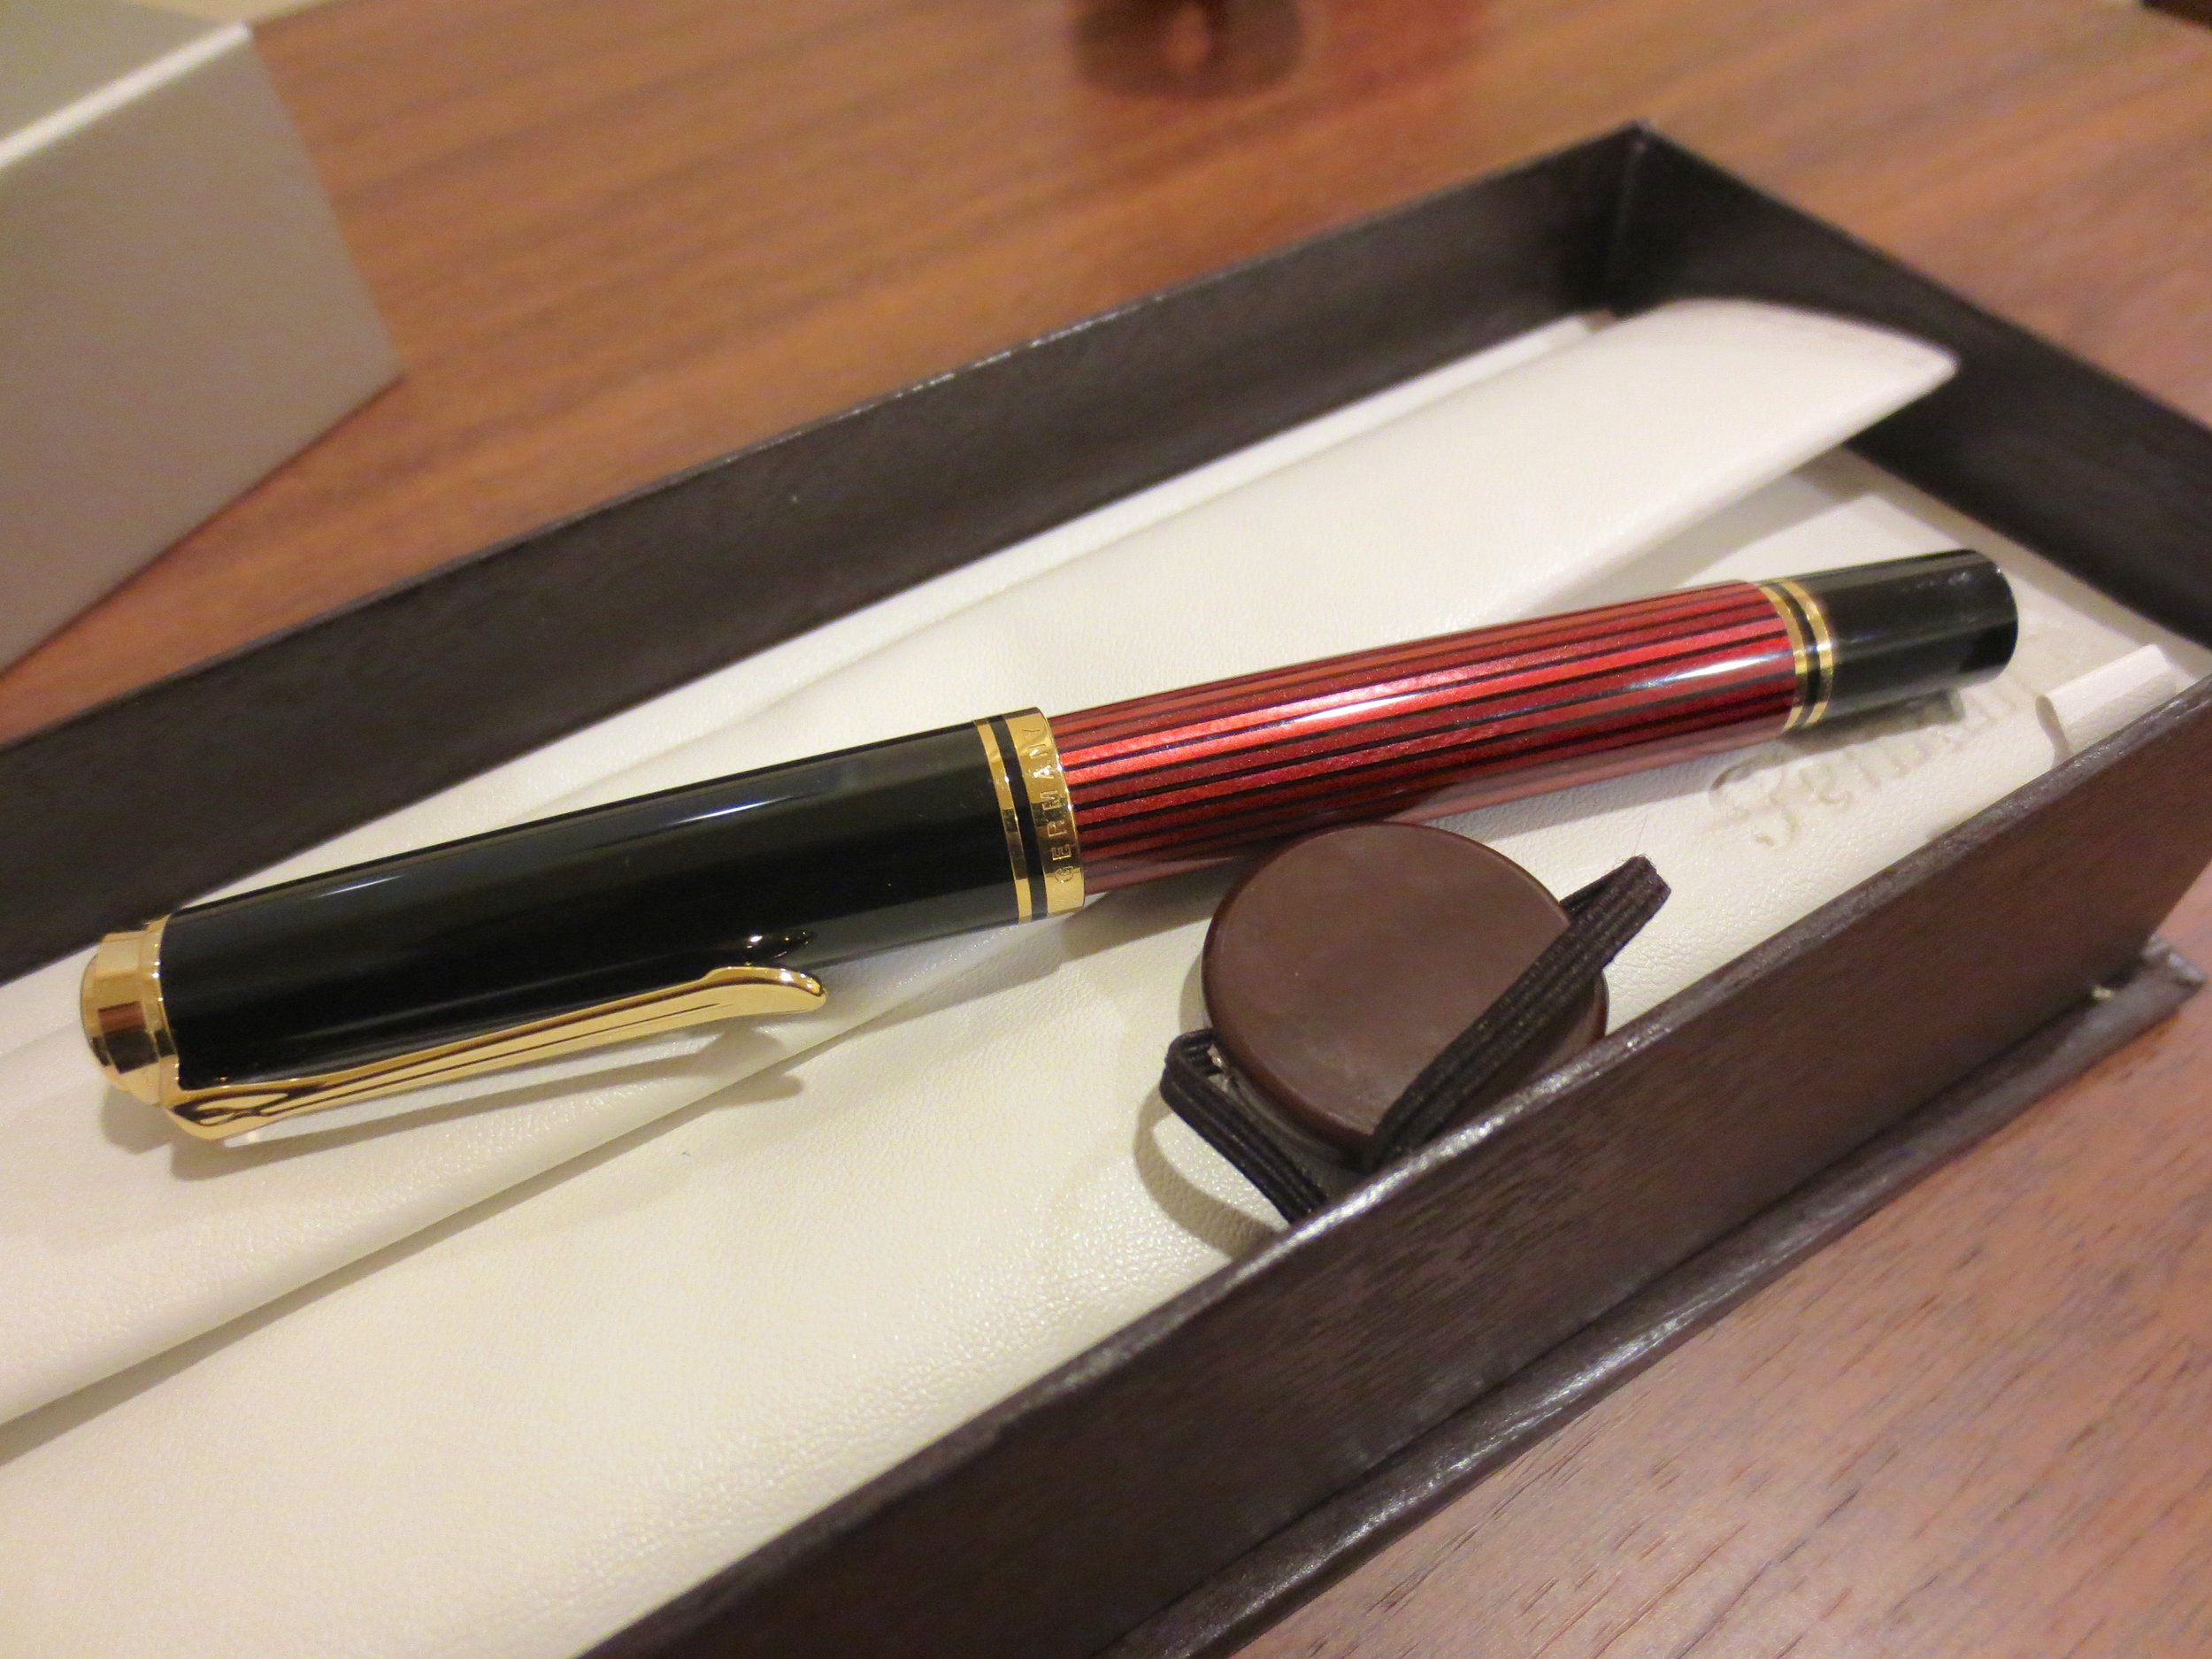 I reviewed this Pelikan M600 early on, and it's one of the pens that stuck in the rotation, along with my Montblanc 146.